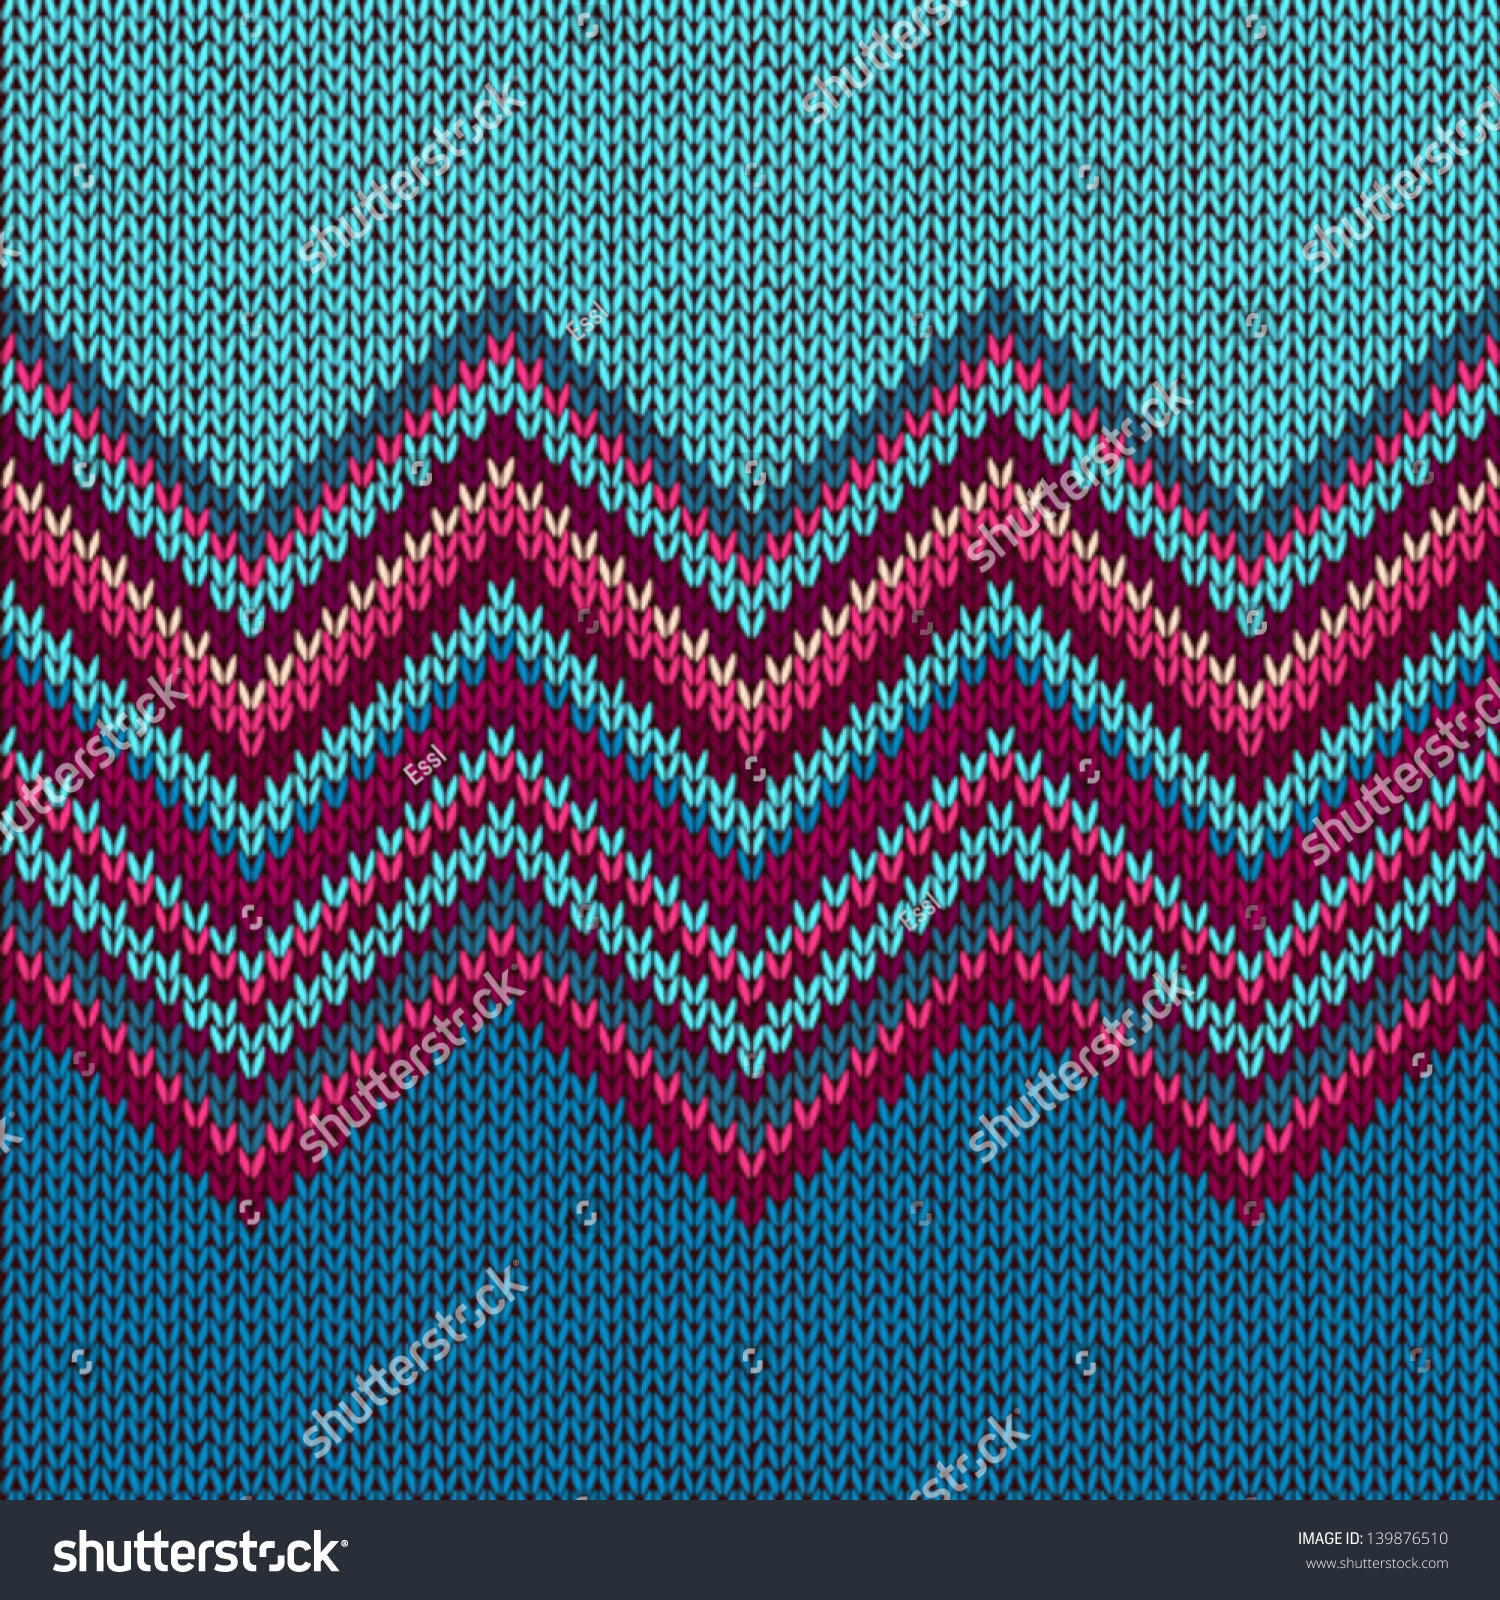 Knitting Patterns For Texture : Knitted Seamless Fabric Pattern Beautiful Red Stock Vector 139876510 - Shutte...